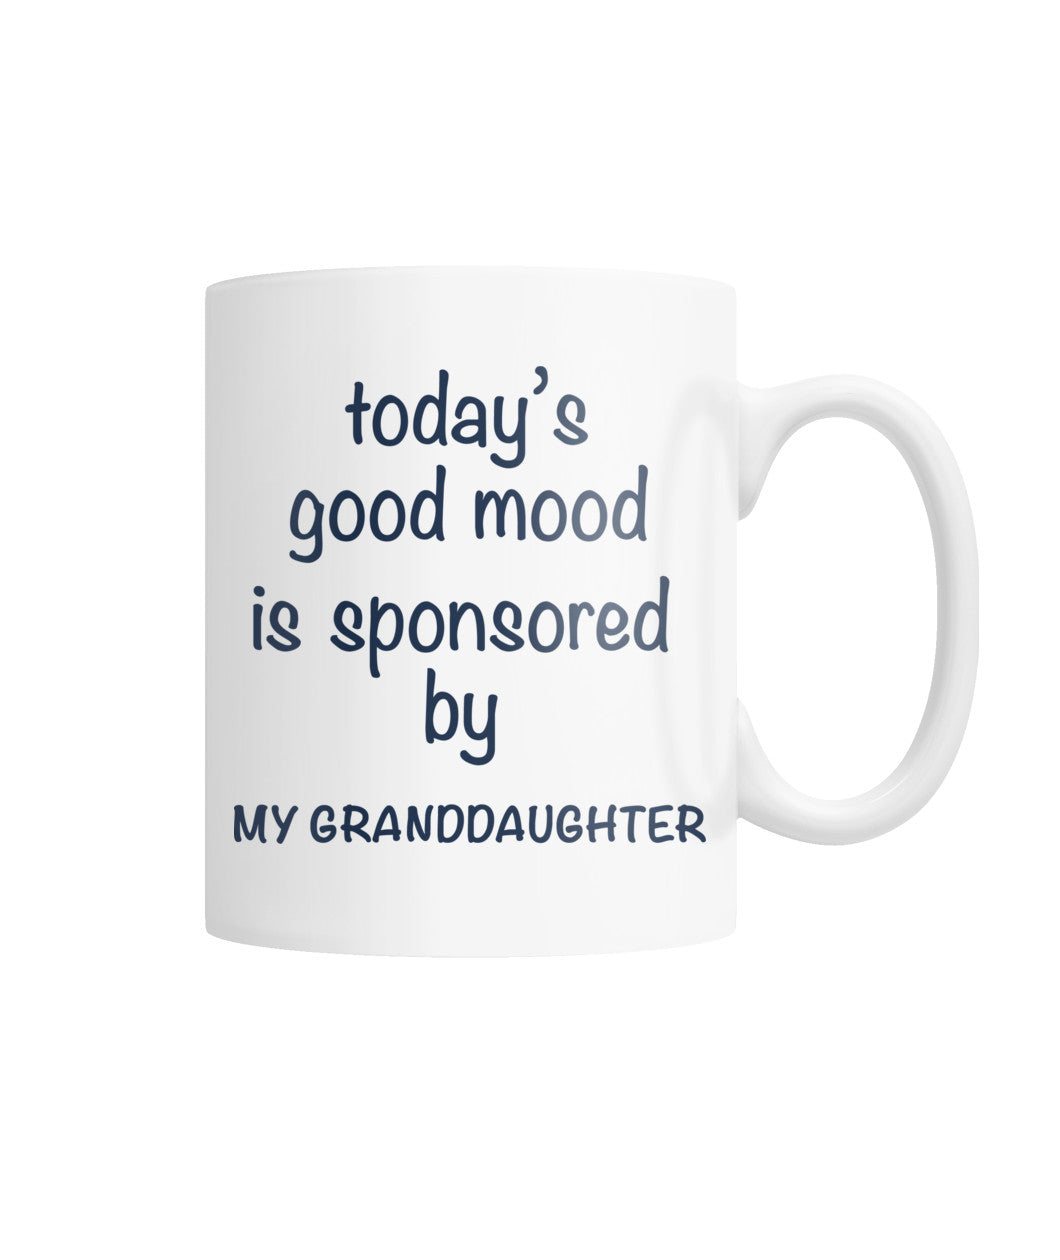 Today's good mood mug White Coffee Mug